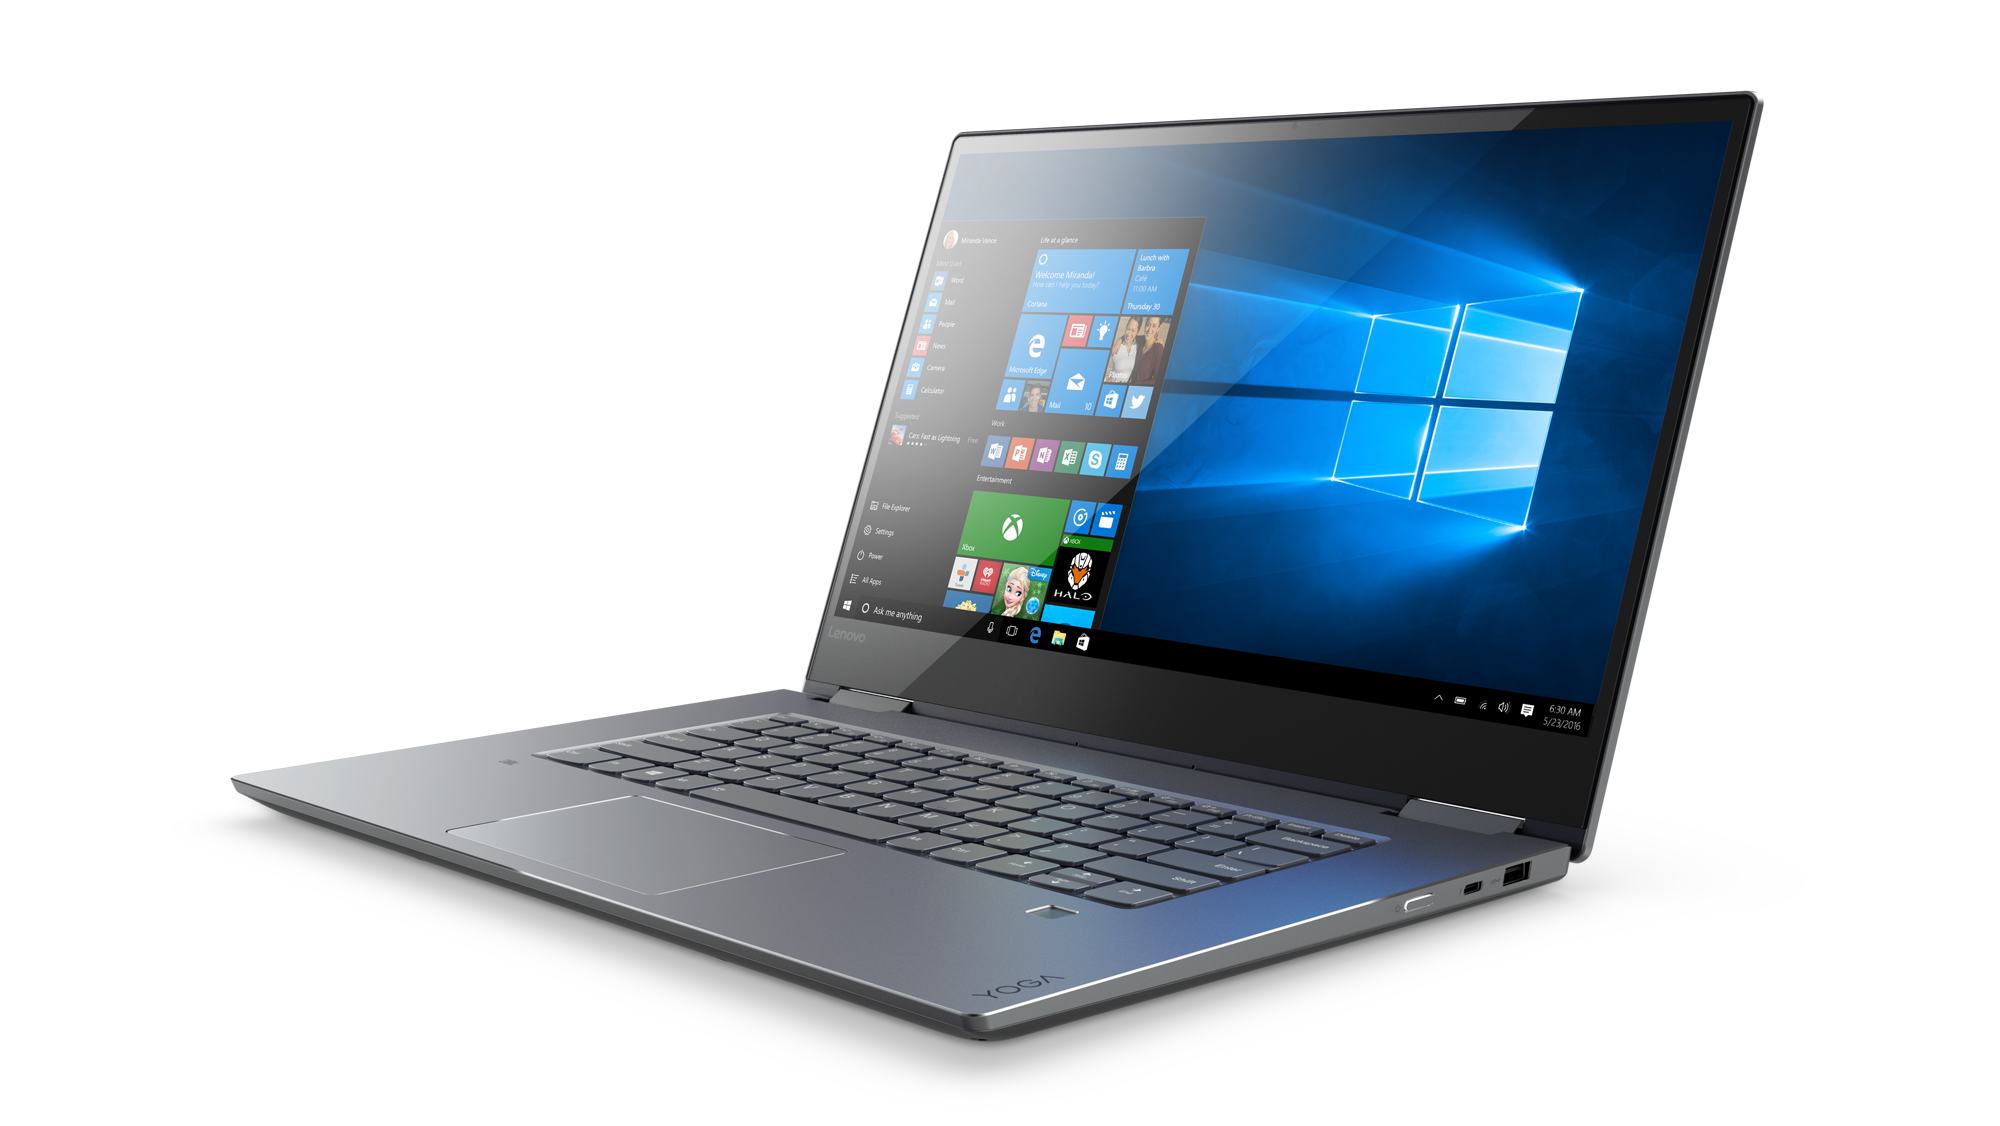 "Lenovo YOGA 720-15IKB i7-7700HQ 3,80GHz/16GB/SSD 512GB/15,6"" 4K/IPS/AG/multitouch/GeForce 4GB/WIN10 PRO šedá 80X70074CK"